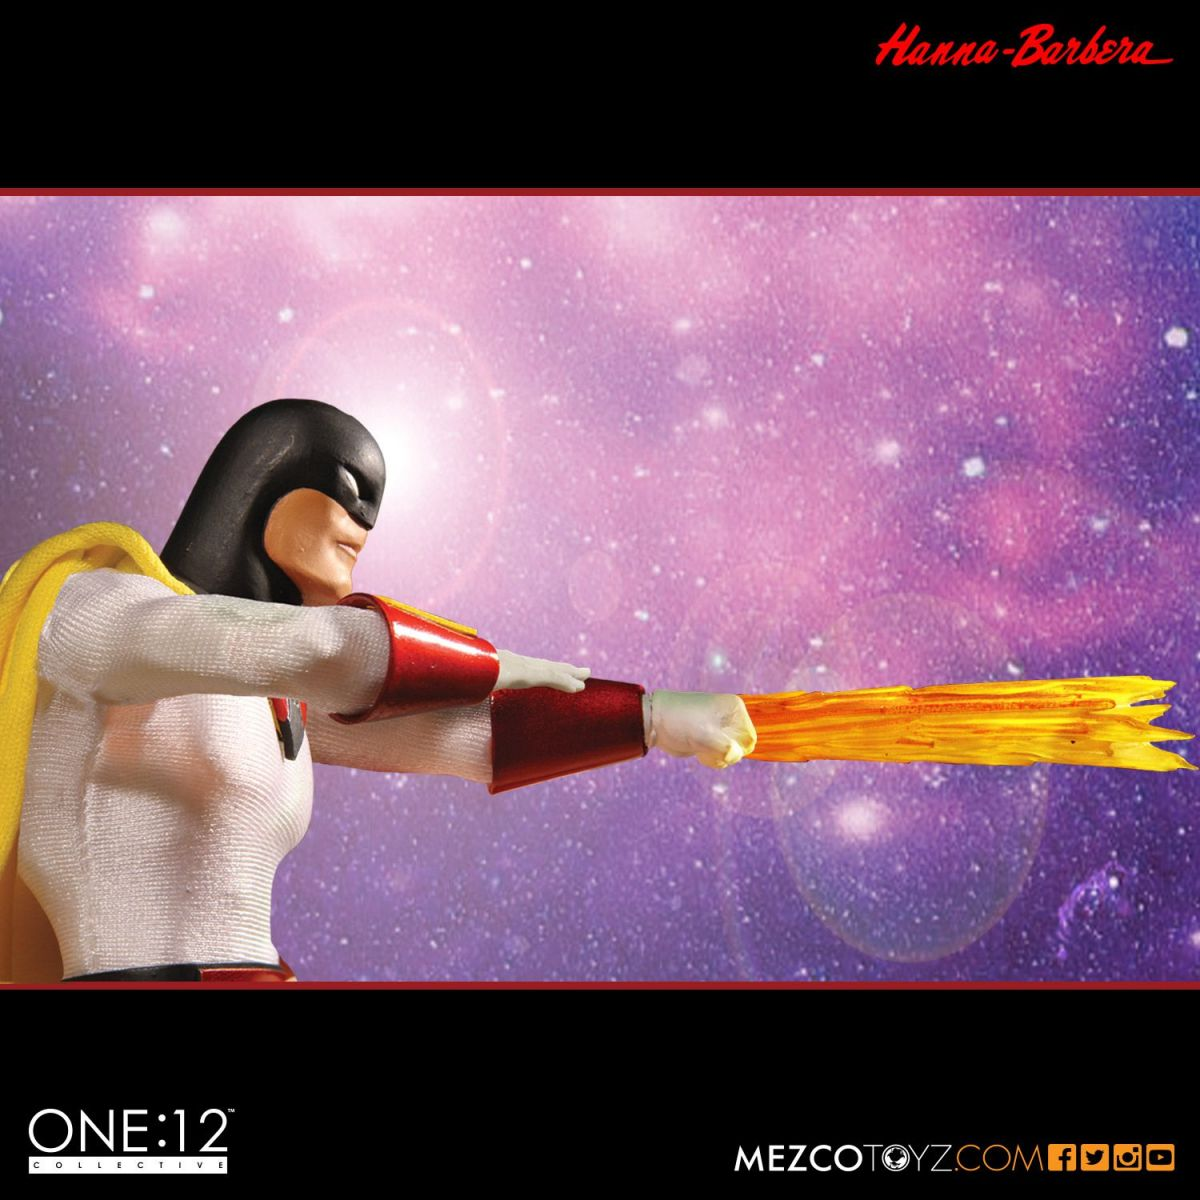 The One:12 Collective Space Ghost Escala 1/12 - Mezco